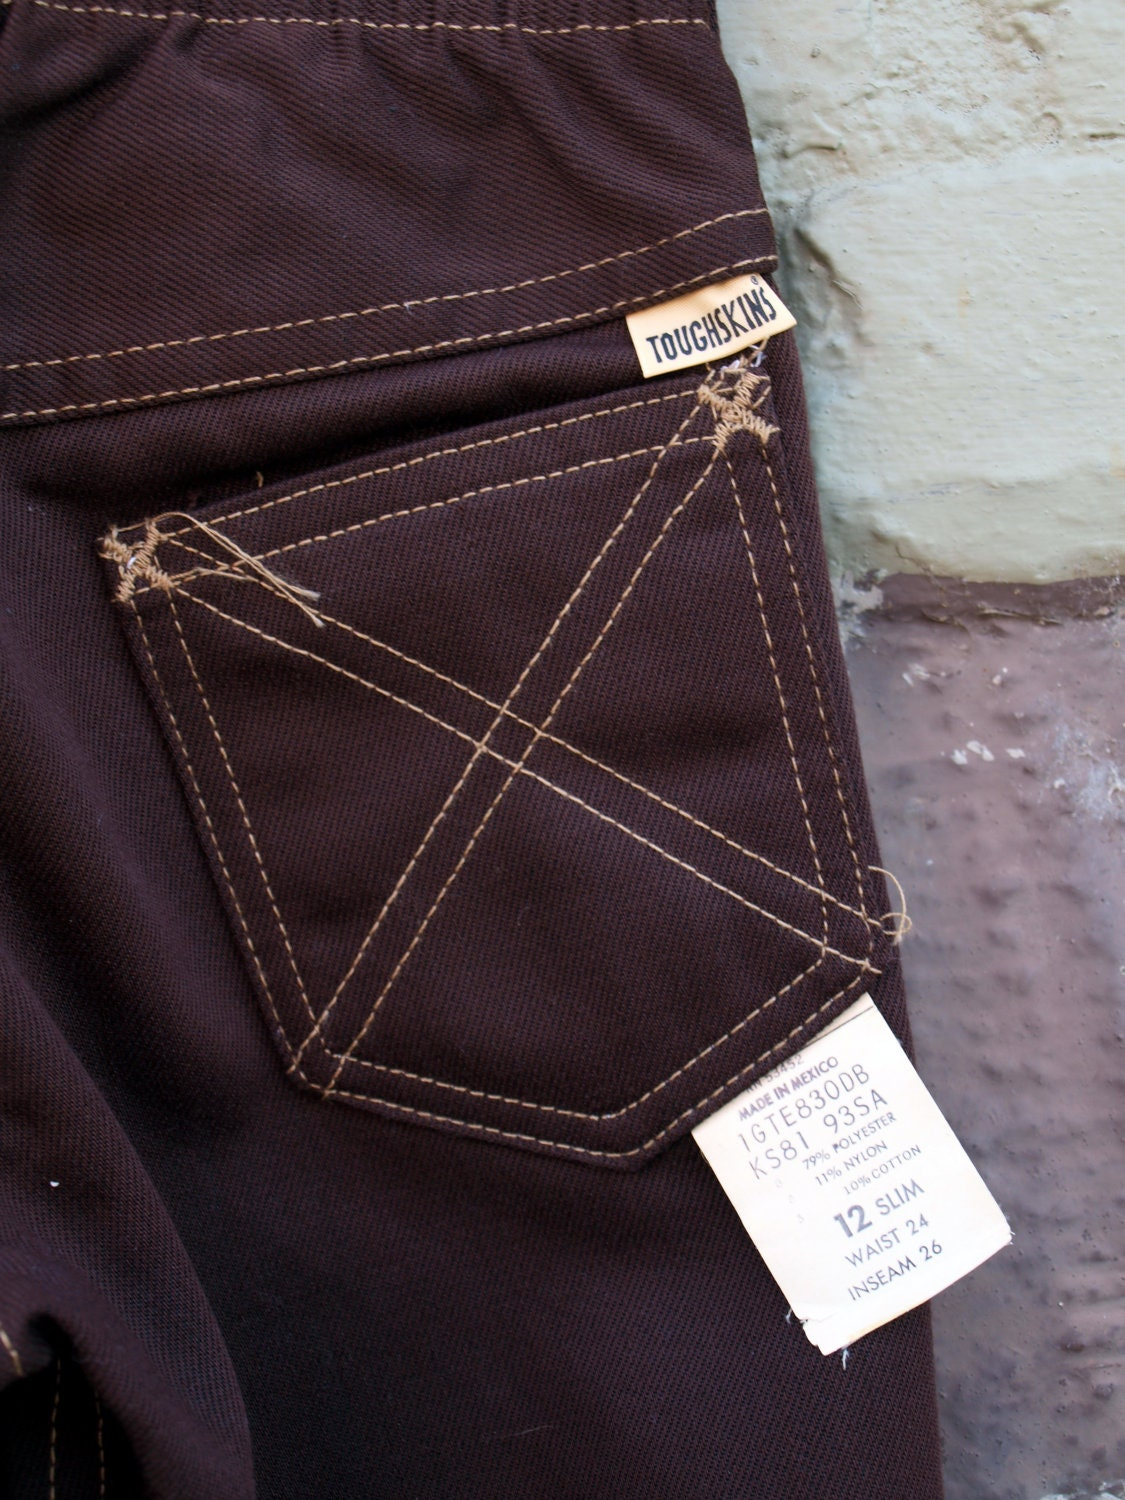 Vintage Deadstock Sears Toughskins Chocolate Brown Jeans Size